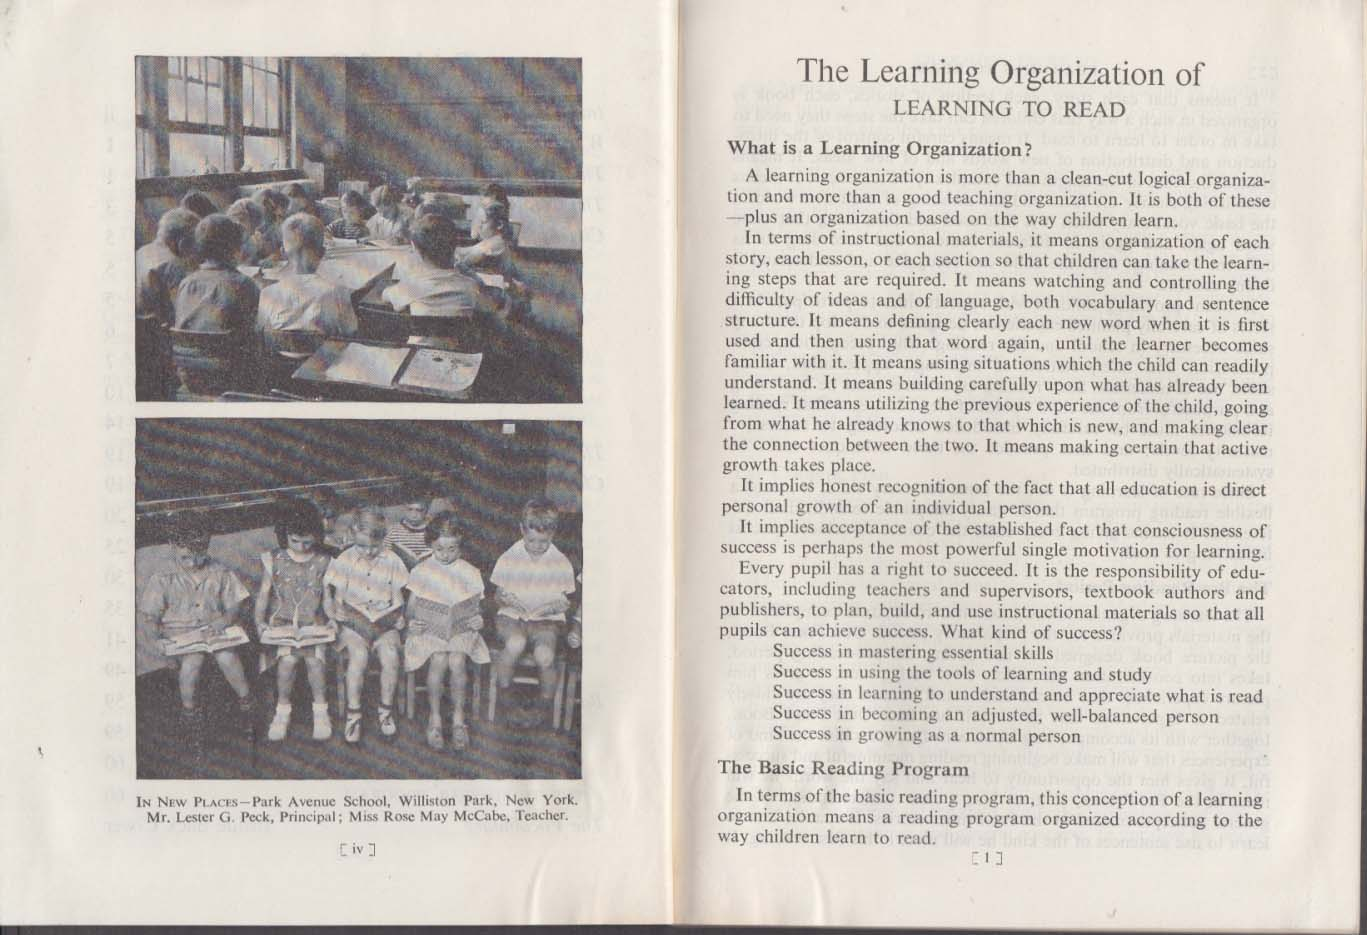 Silver Burdett The Learning Organization of Learning to Read primers 1945